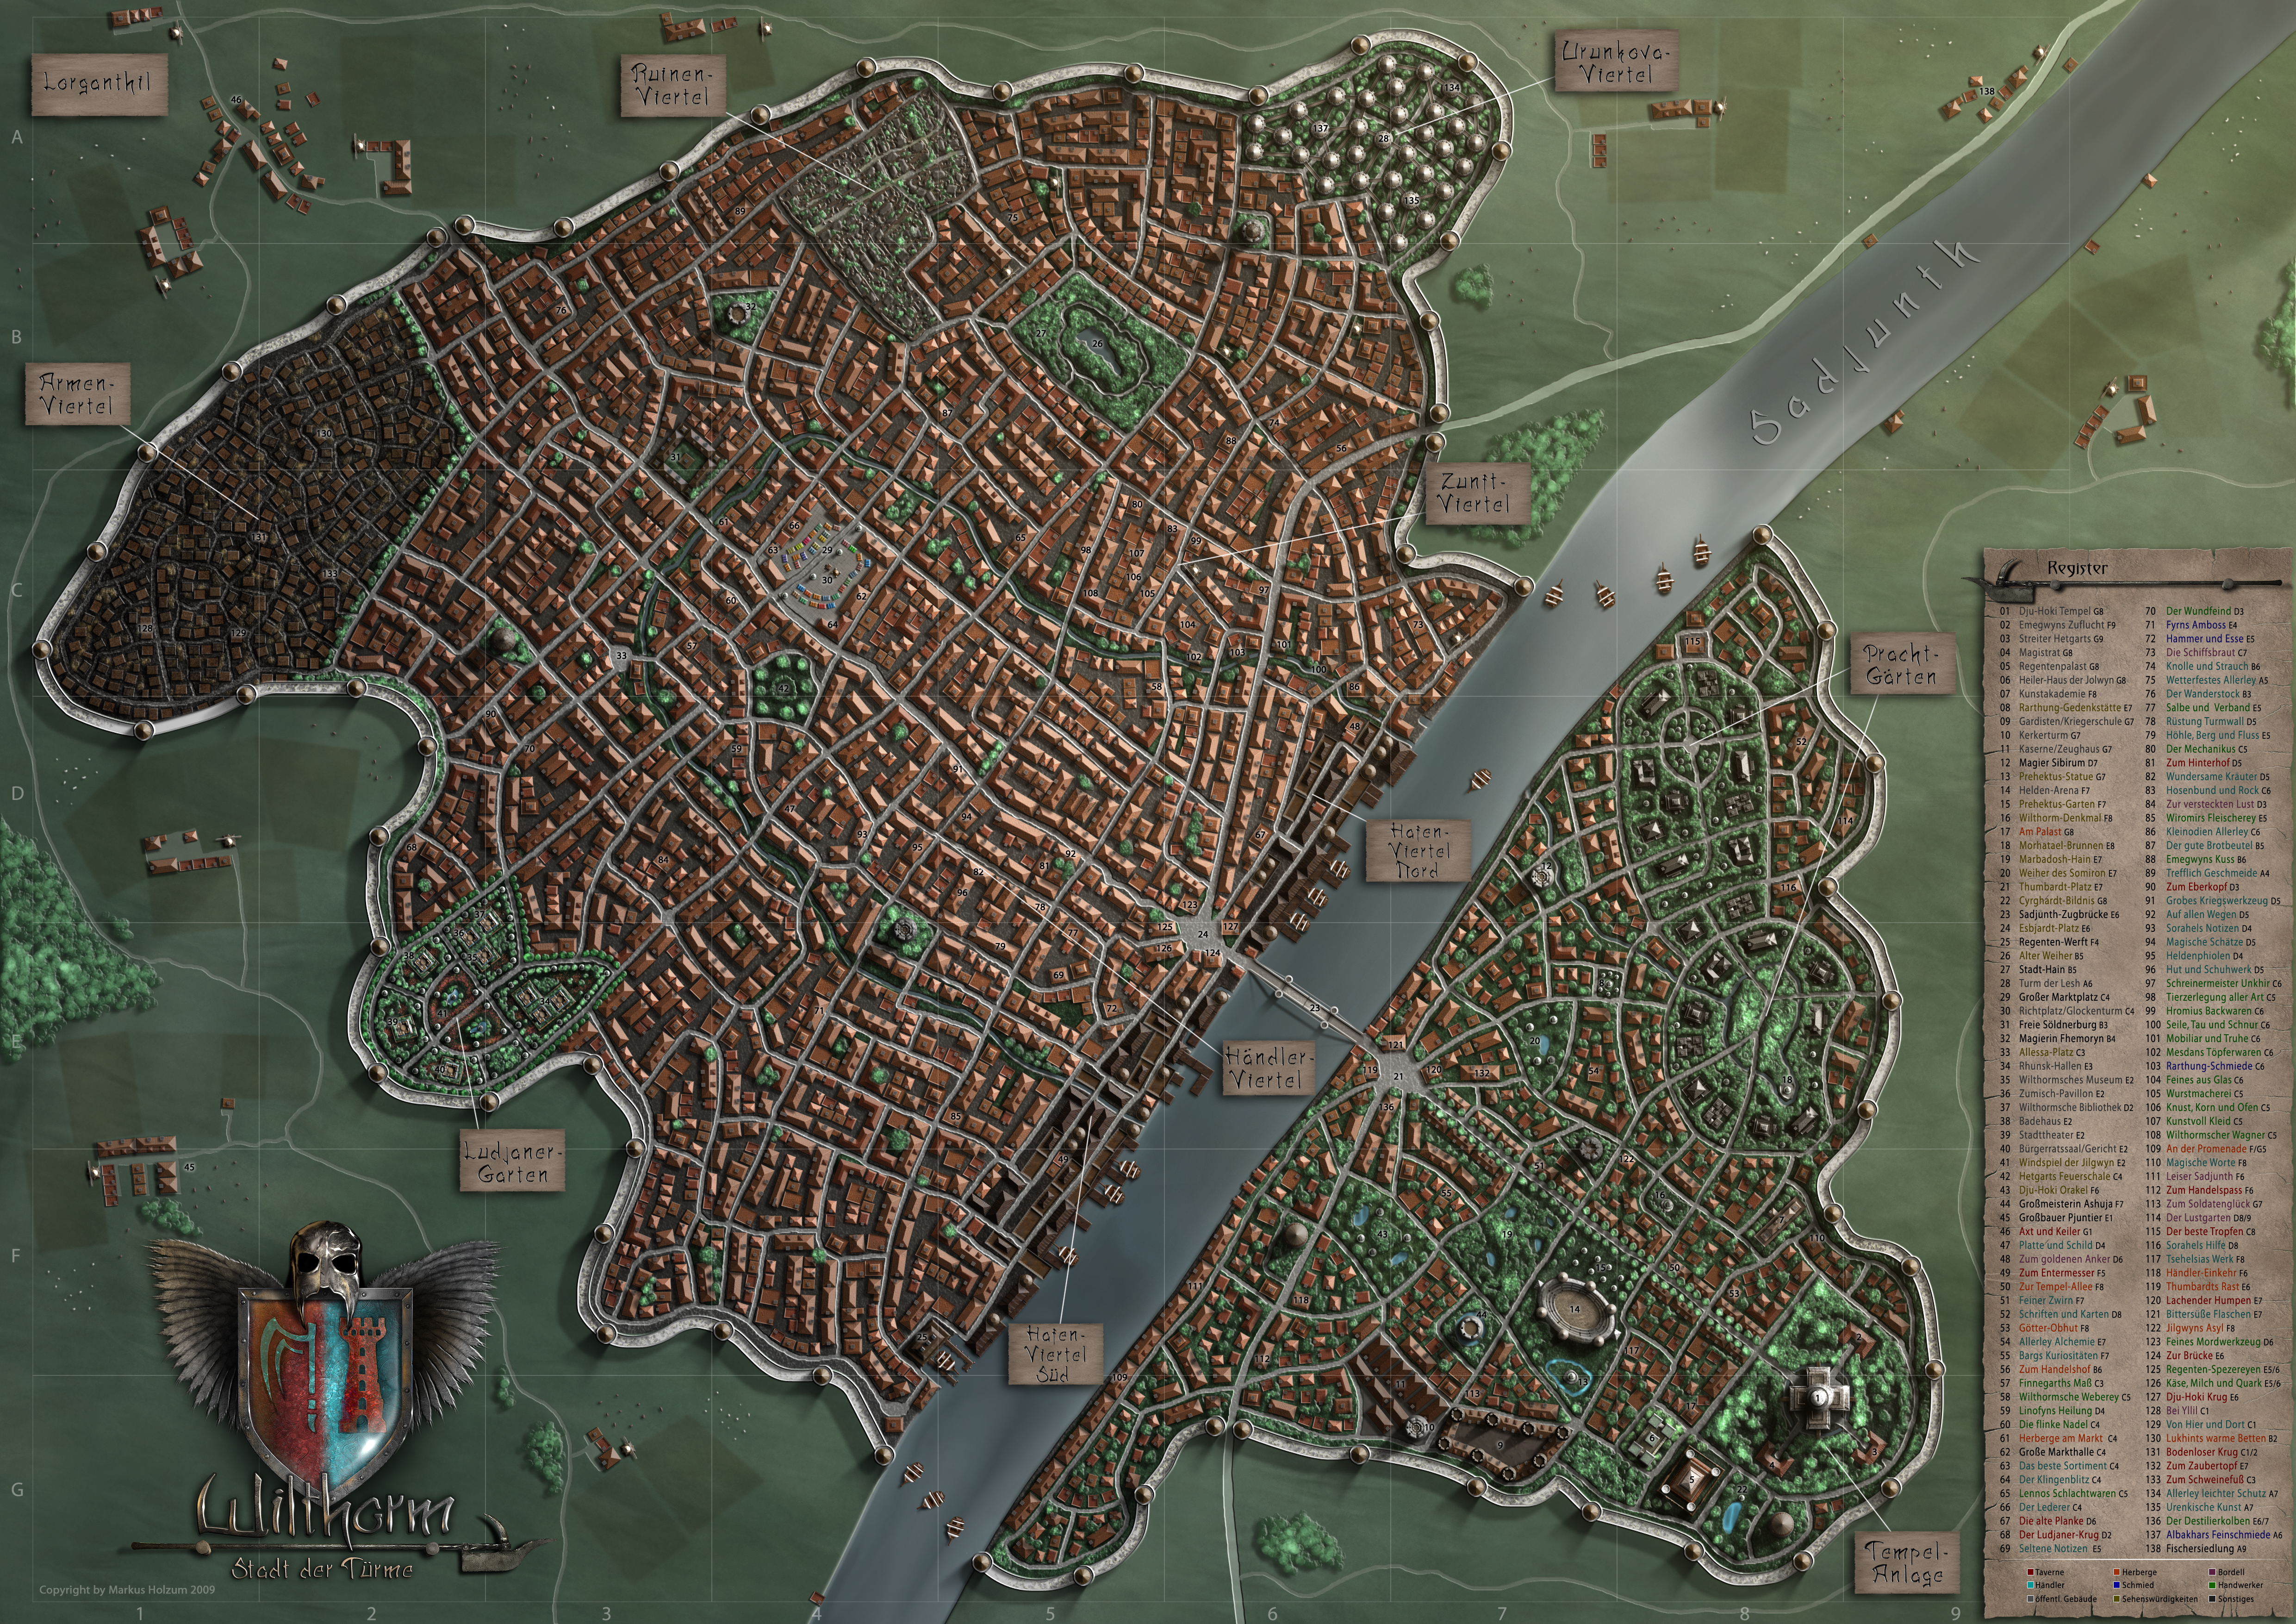 Wilthorm a fantasy city by khorghil on deviantart wilthorm a fantasy city by khorghil gumiabroncs Image collections